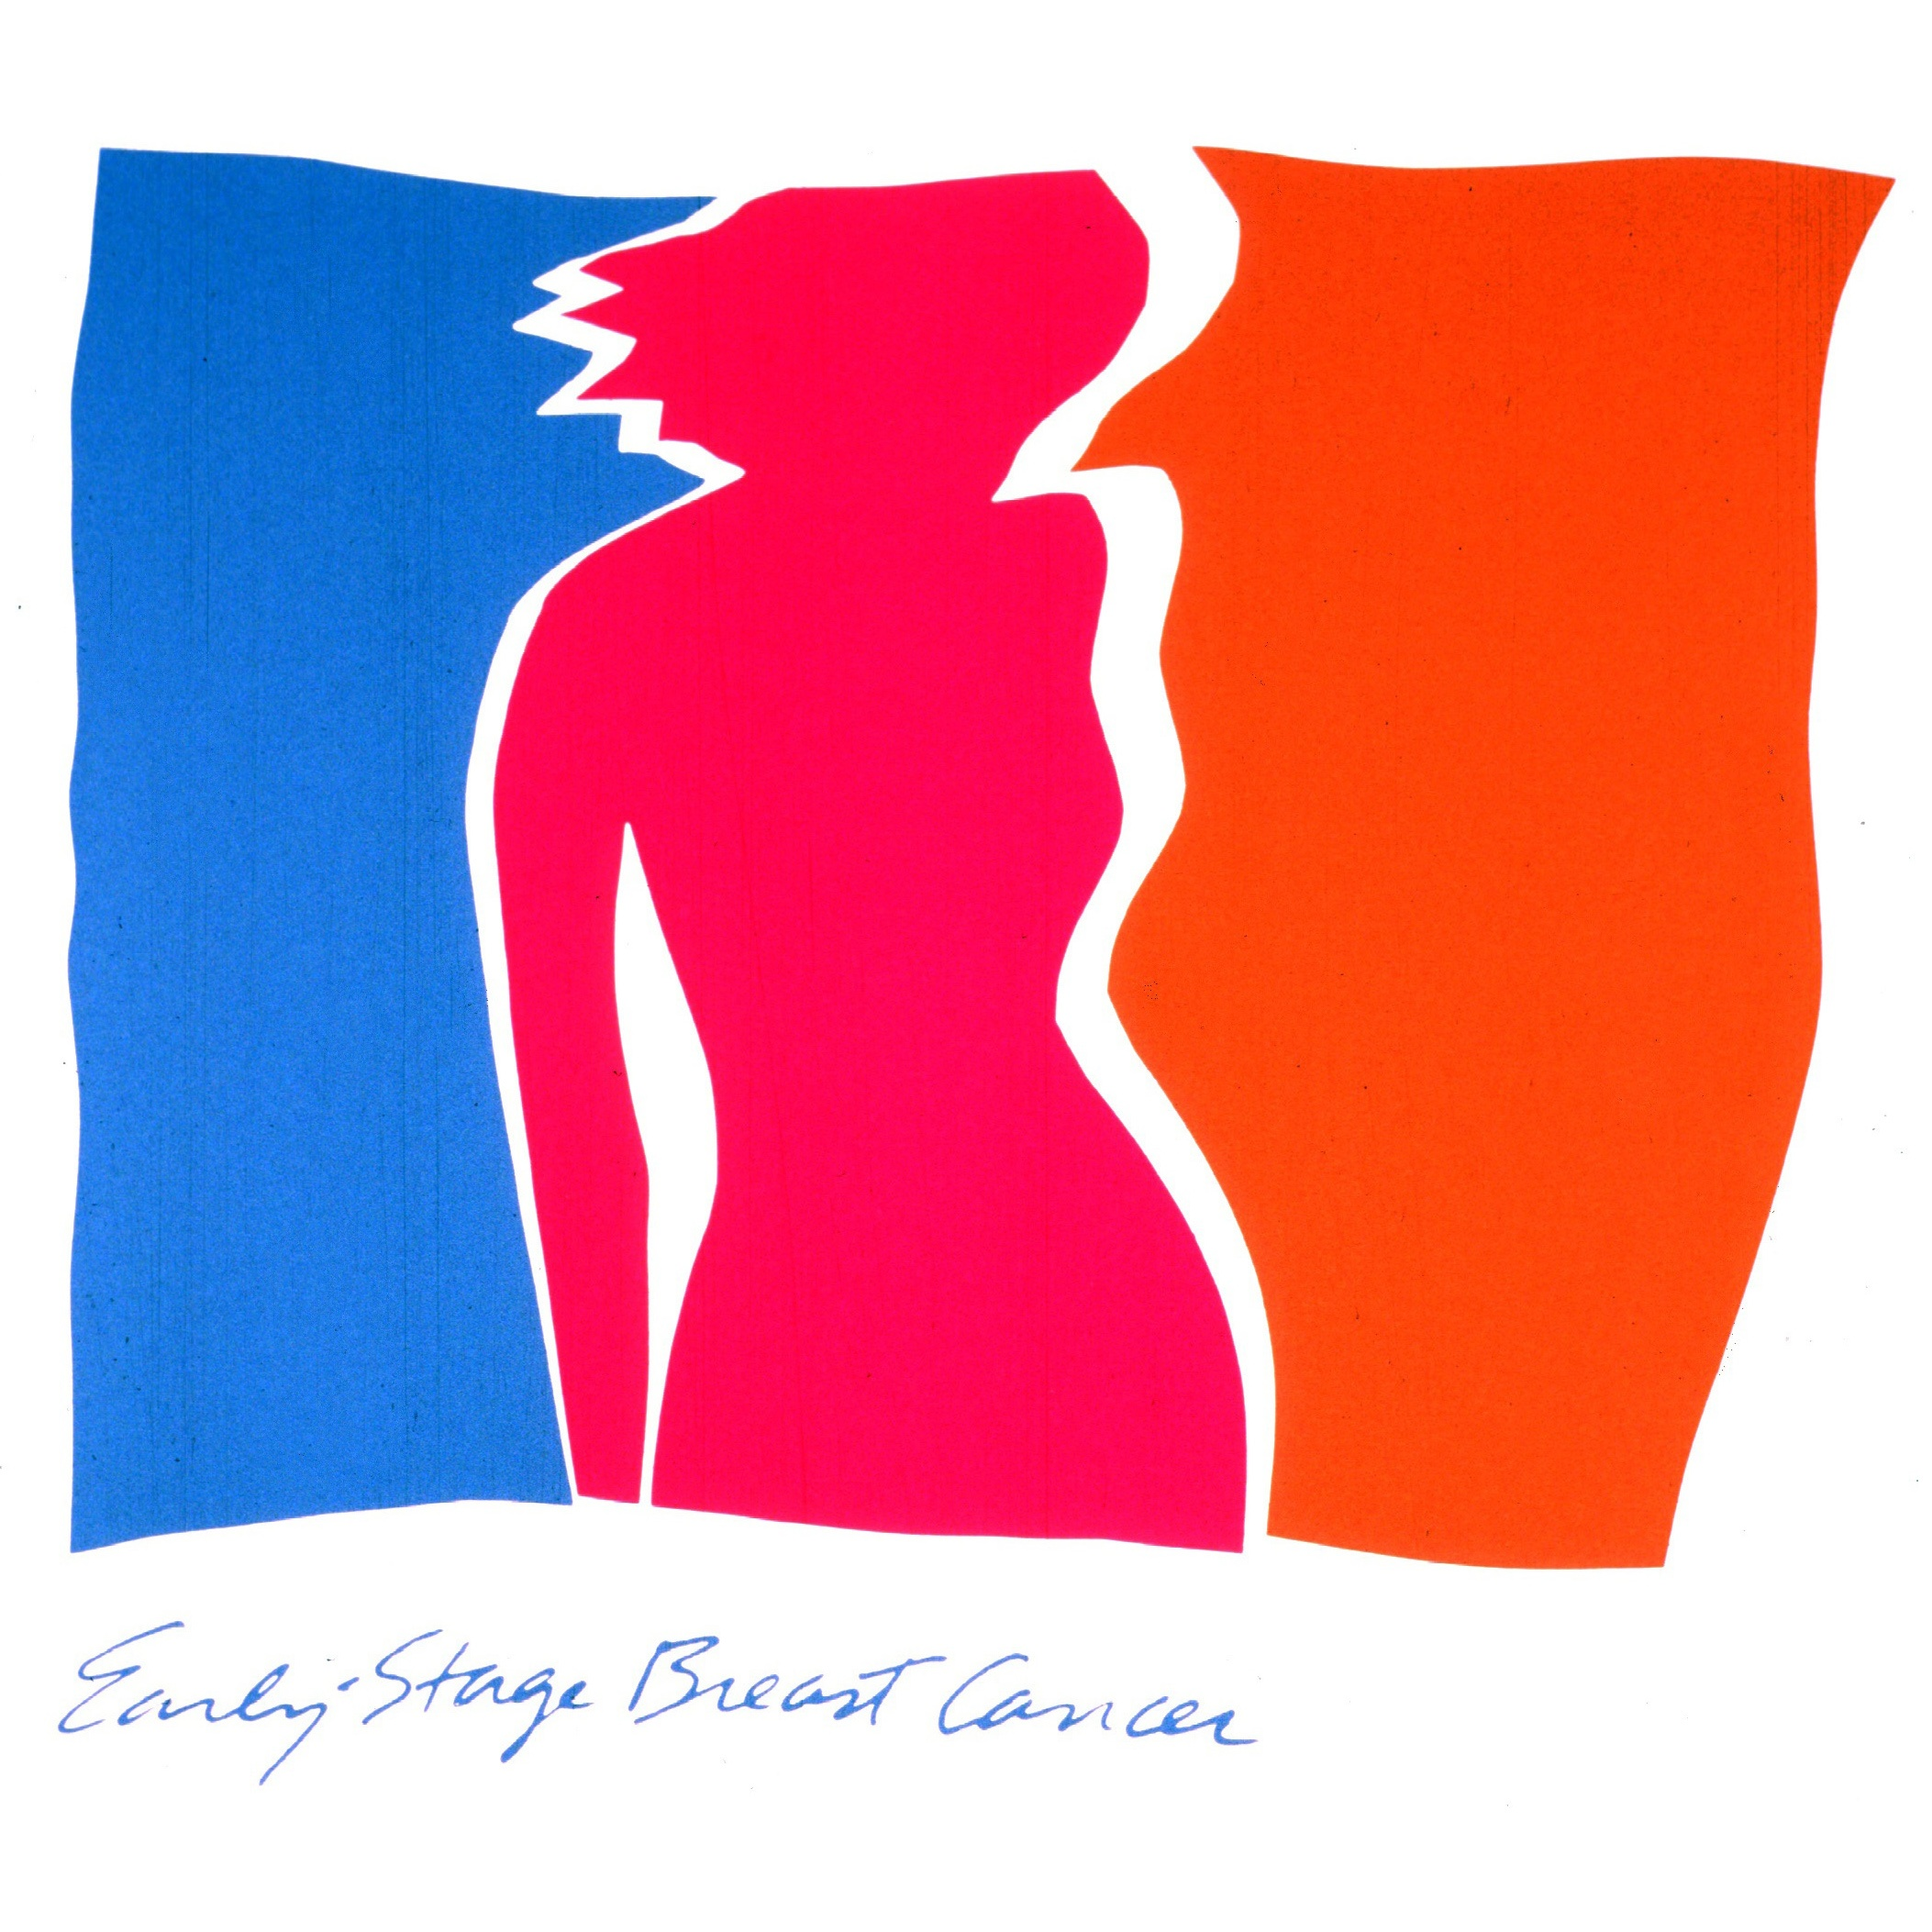 Poster featuring the silhouette of a woman and the title early stage breast cancer